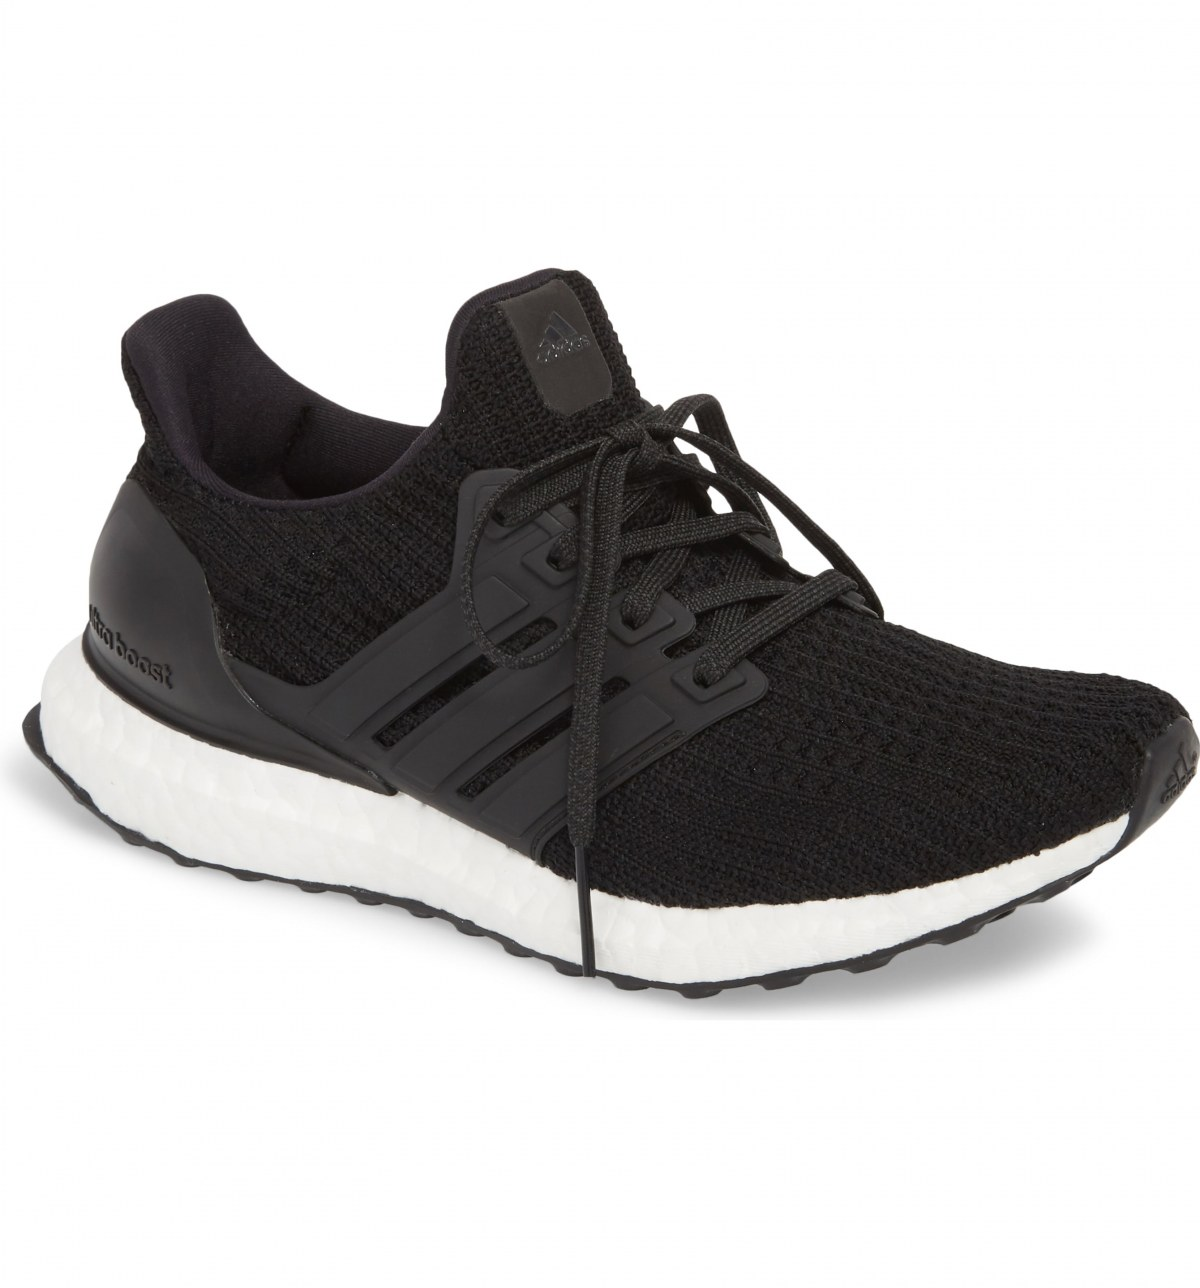 UltraBoost' Running Shoe by Adidas, available on nordstrom.com for $153 Kendall Jenner Shoes Exact Product